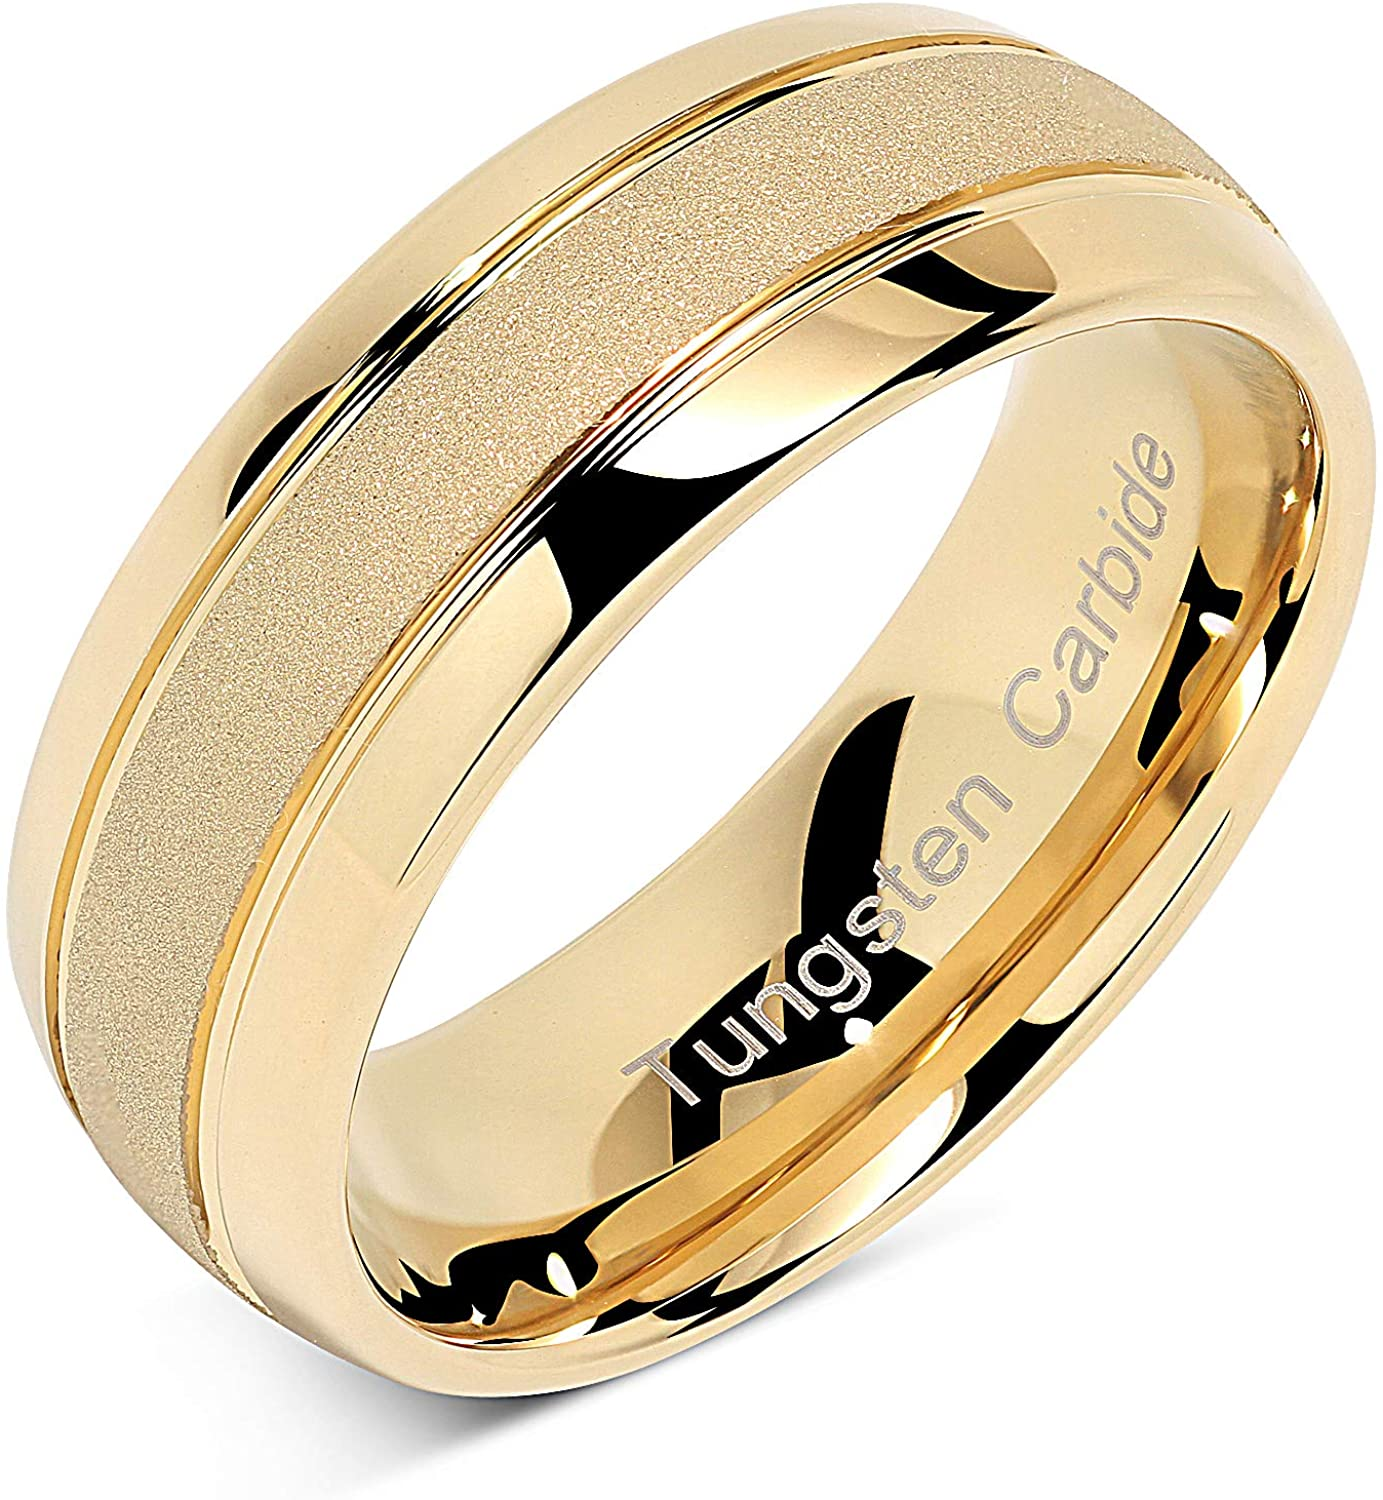 100S JEWELRY Engraved Personalized Tungsten Rings For Men Women Gold Wedding Band SandBlasted Finish Dome Edge Sizes 6-16